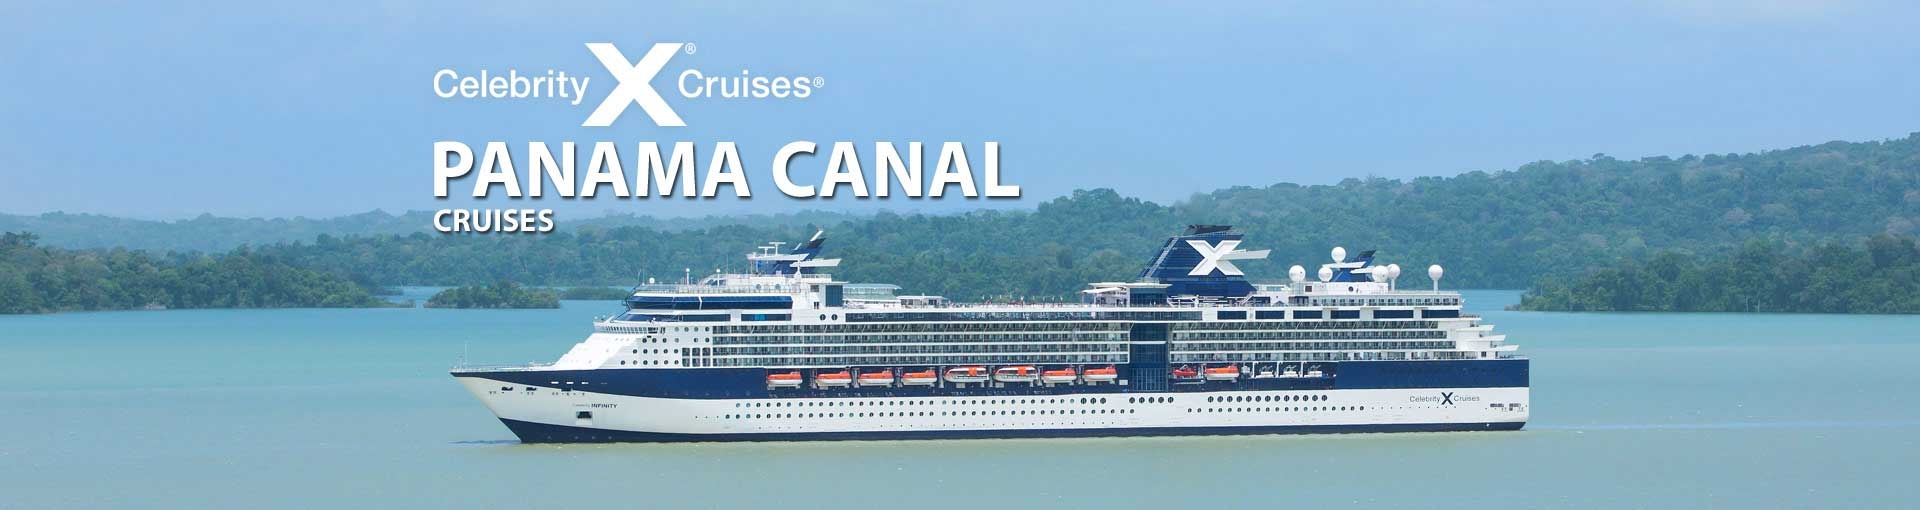 Celebrity Panama Canal Cruise, 15 Nights From San Diego ...